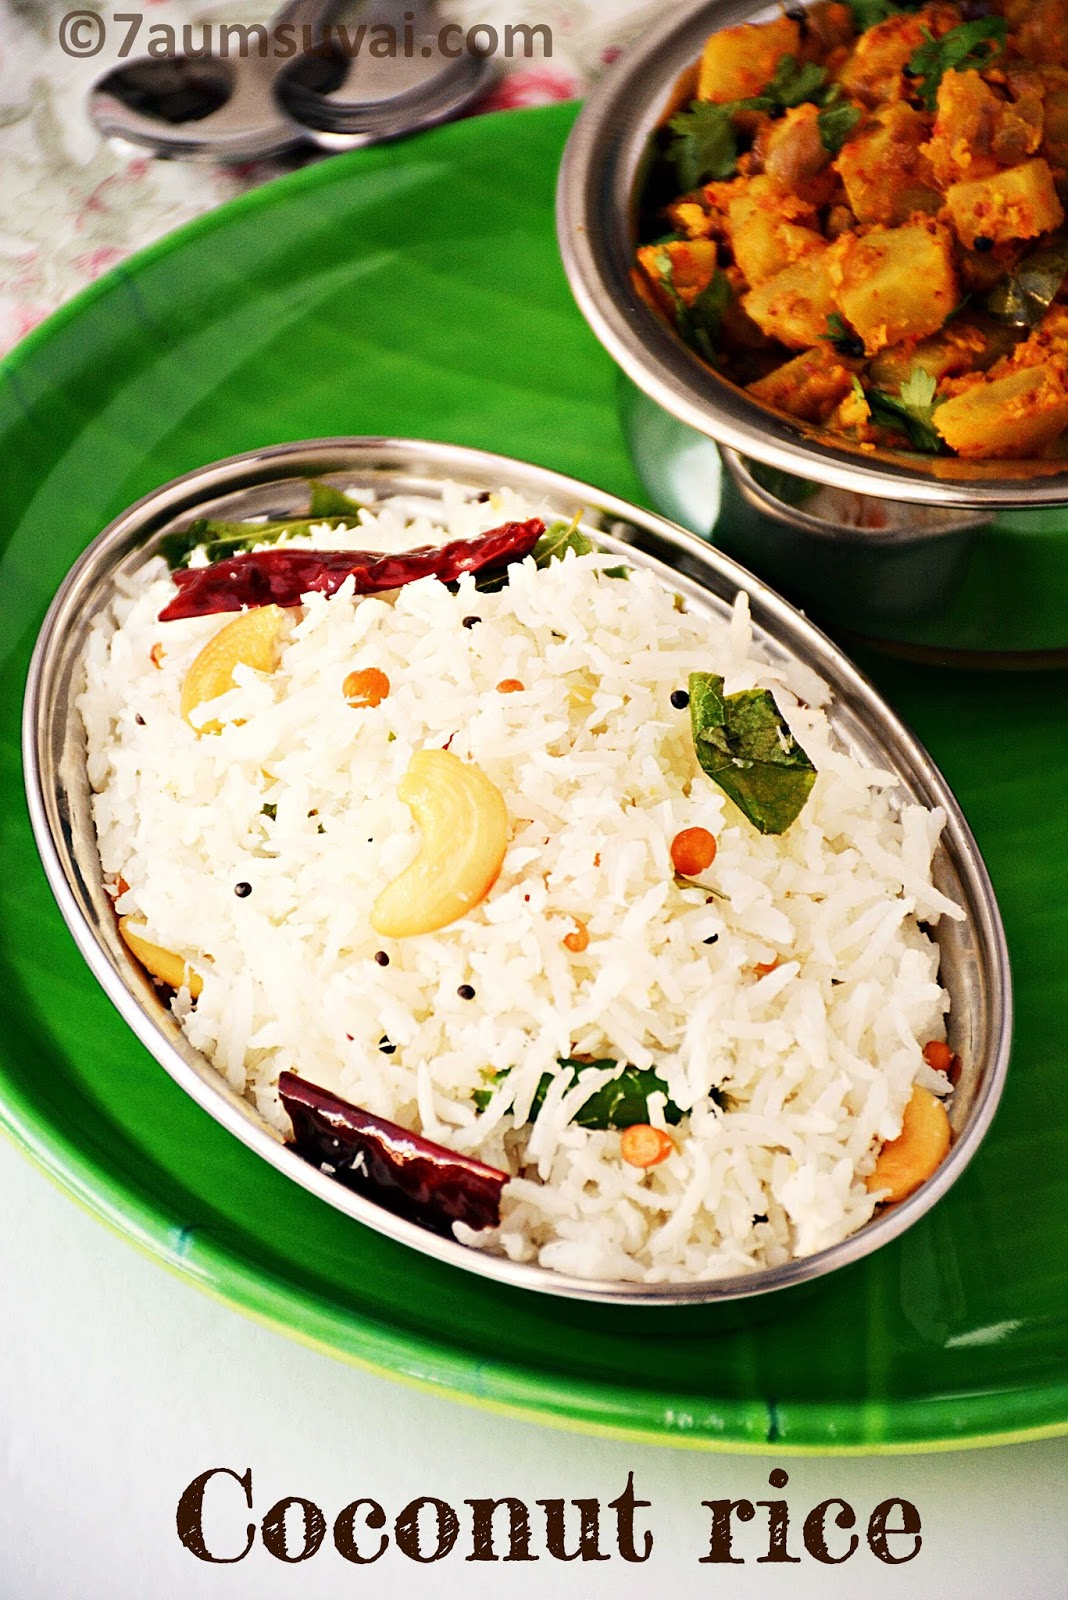 COCONUT RICE THENGAI SADAM THENGAI SADHAM RECIPES WITH